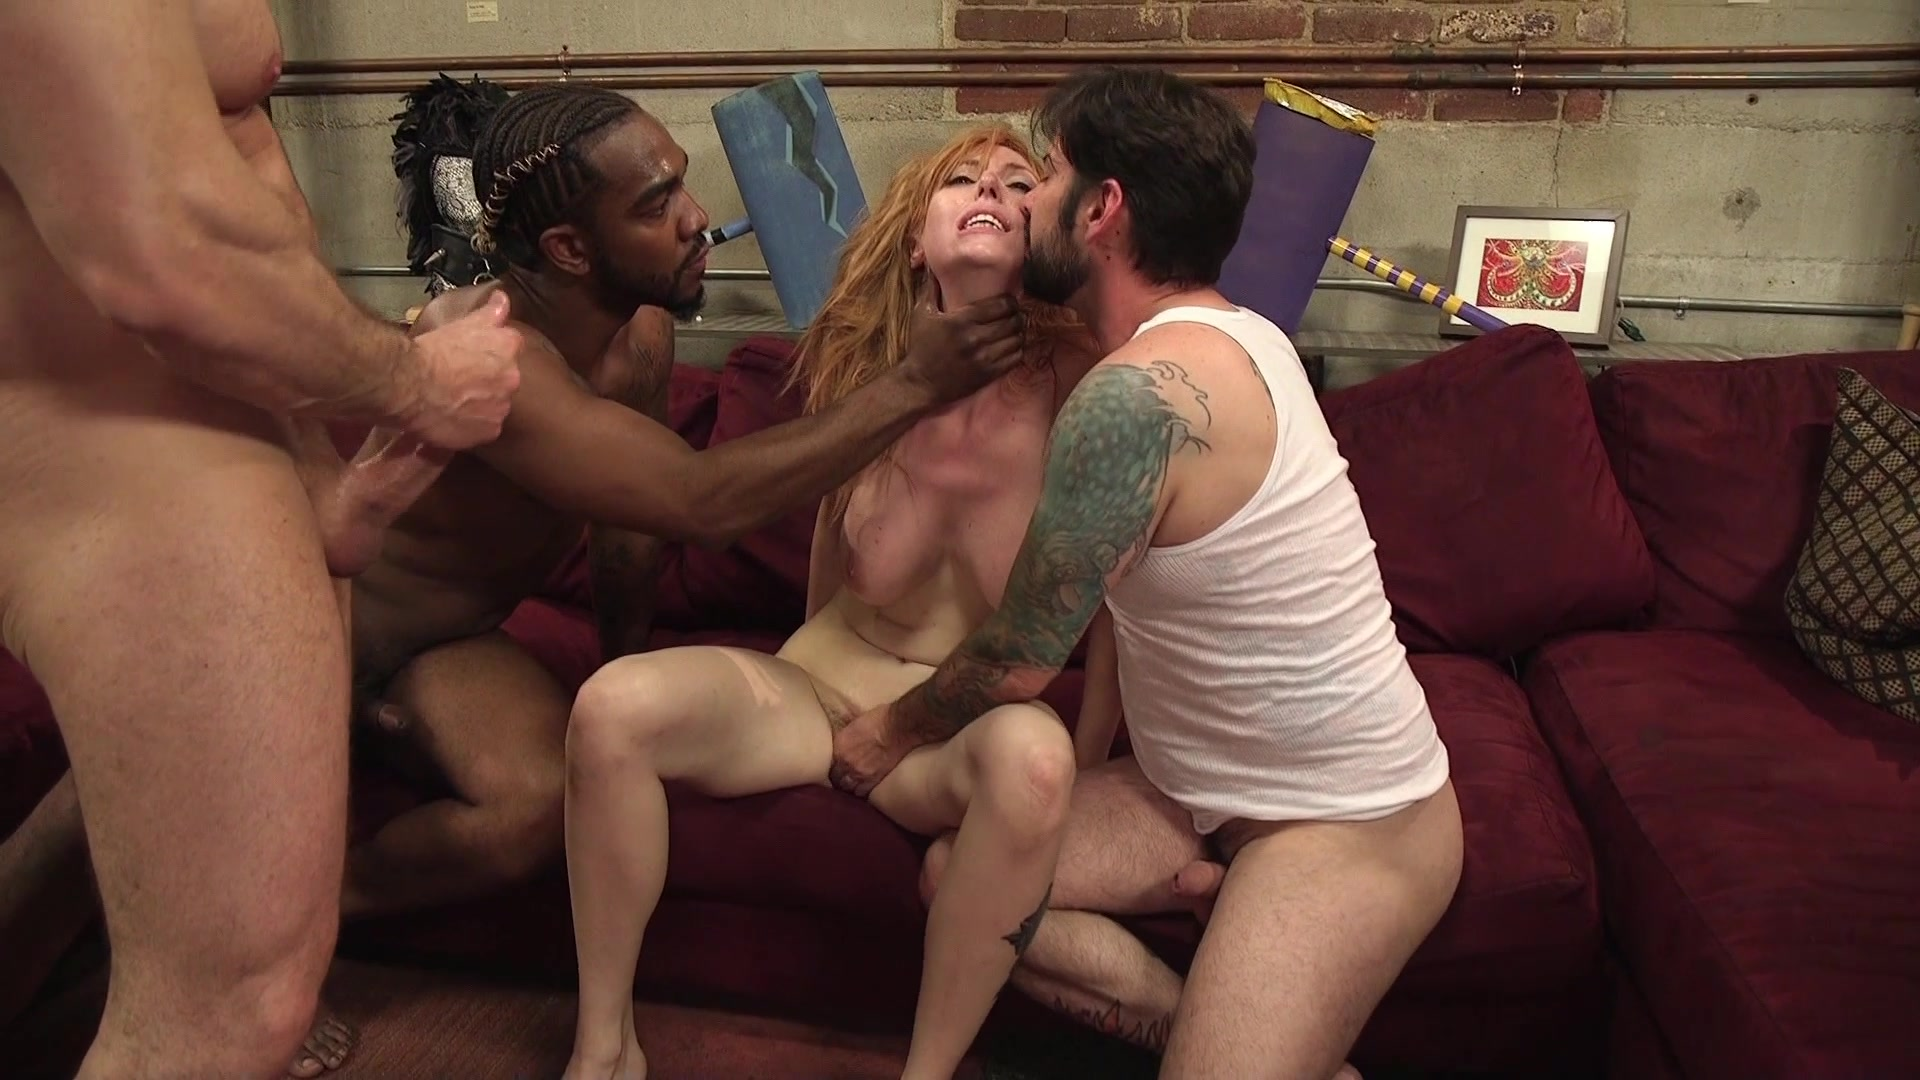 hardcore-gangbang-sex-movies-for-sale-cum-in-my-pussy-videos